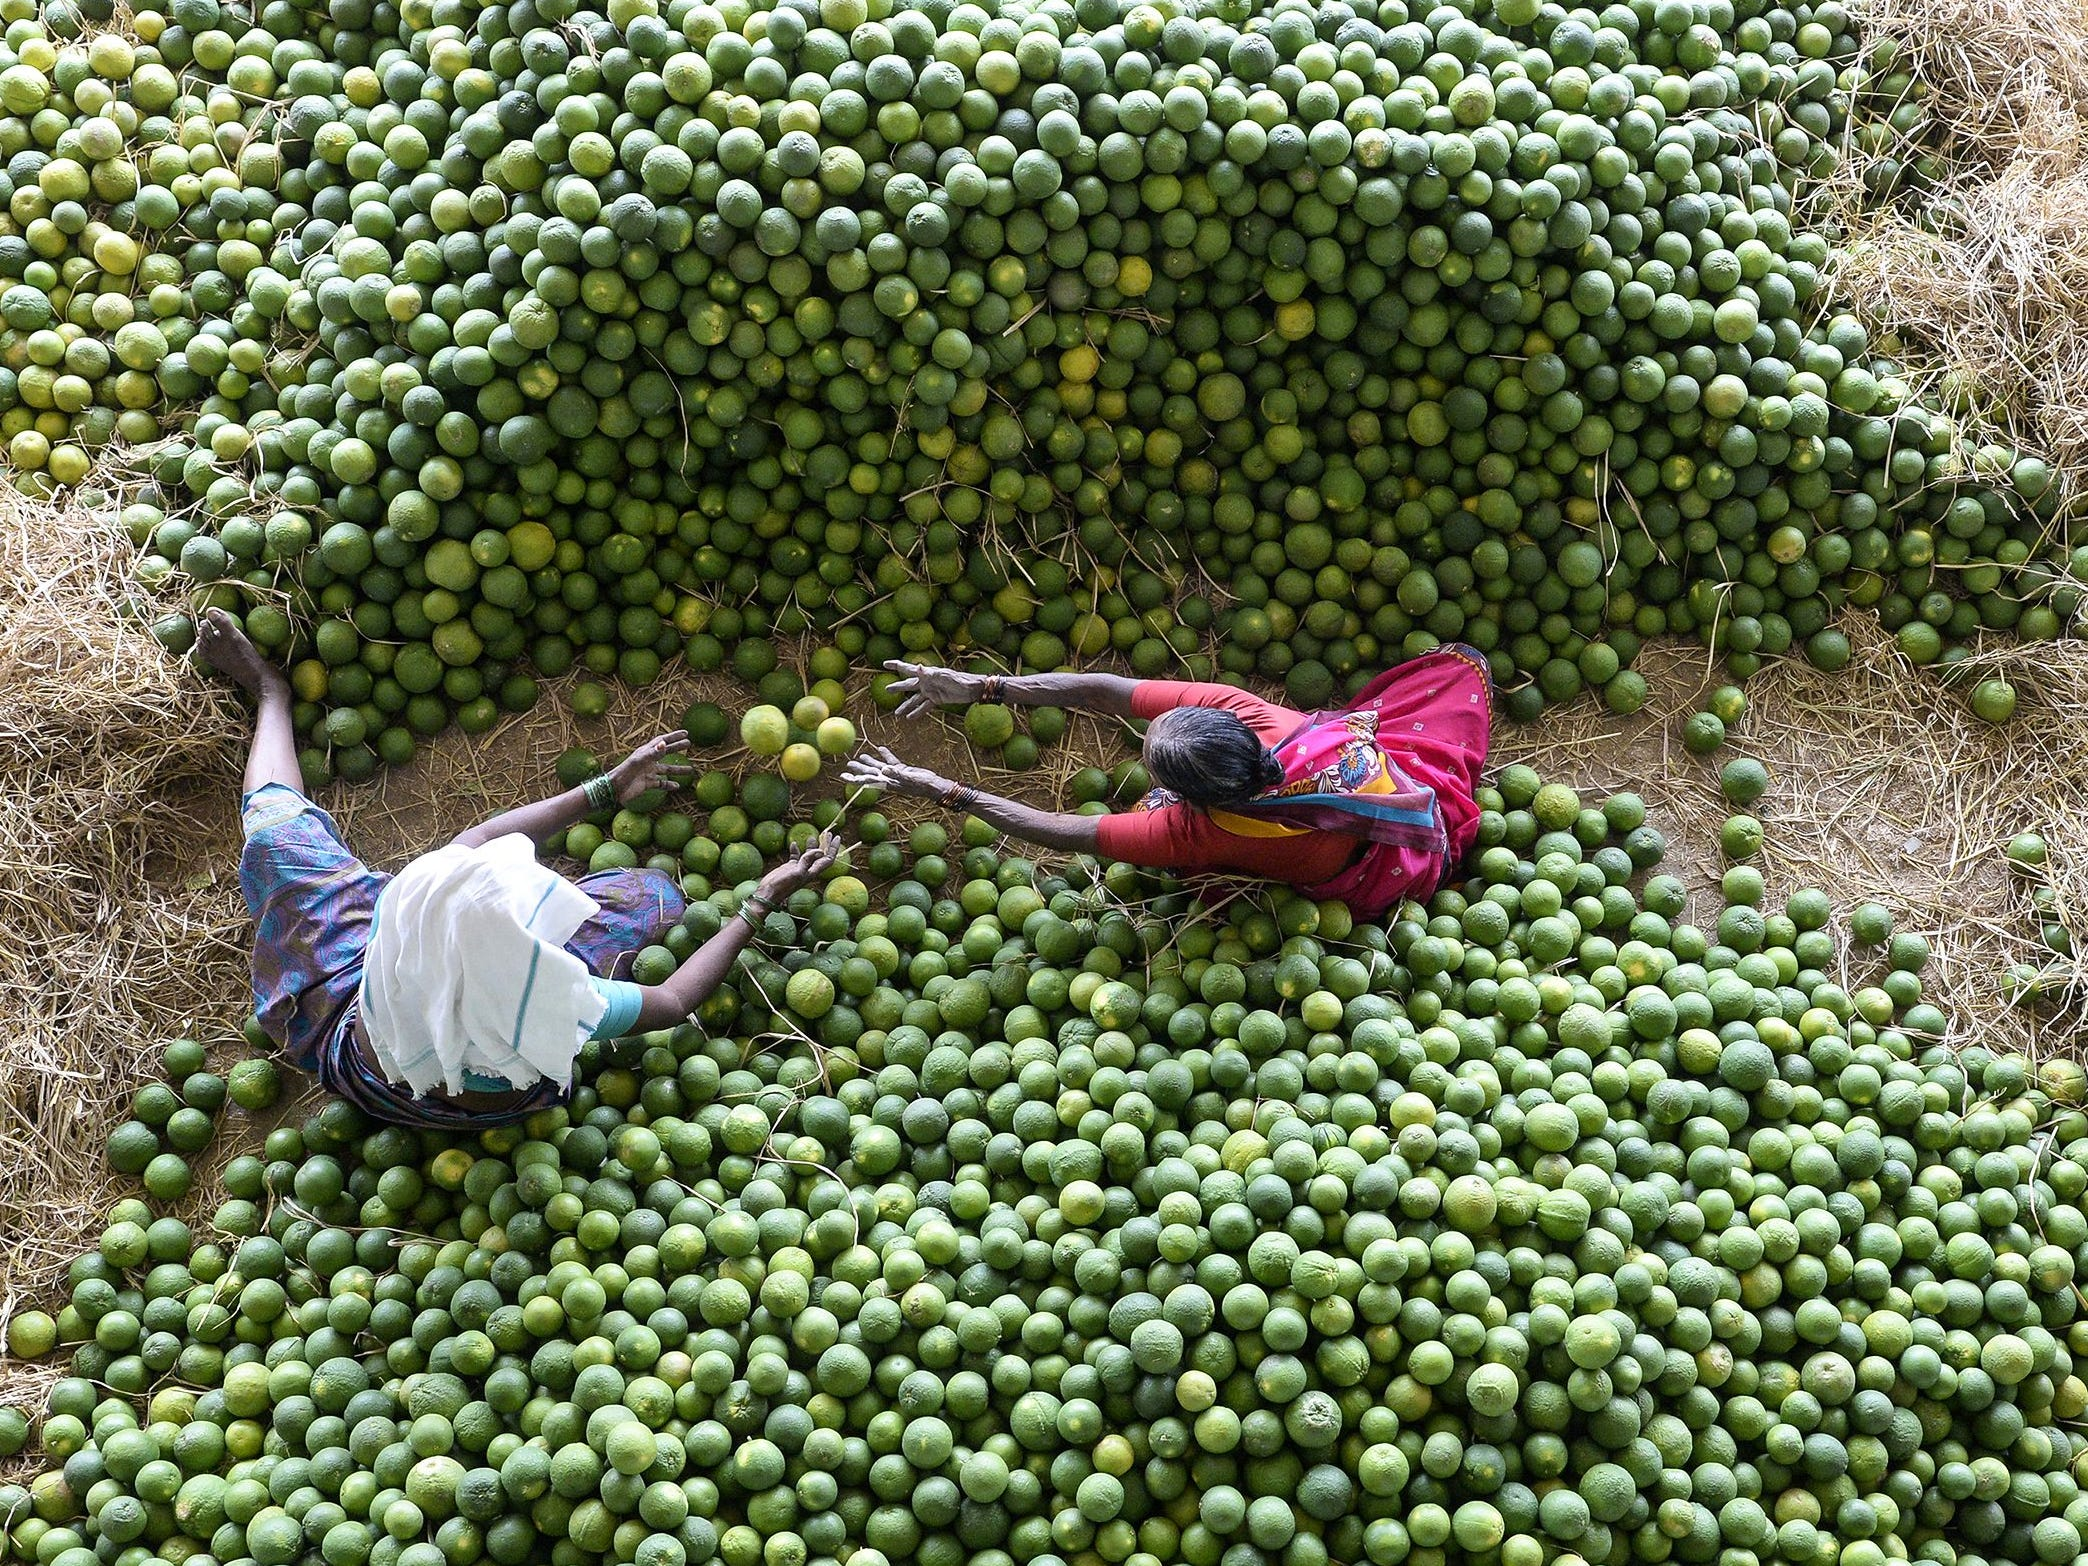 Indian laborers select 'Mosambis' fruits, also called sweet oranges, at Gaddiannaram fruit market on the outskirts of Hyderabad on Feb. 11, 2019.